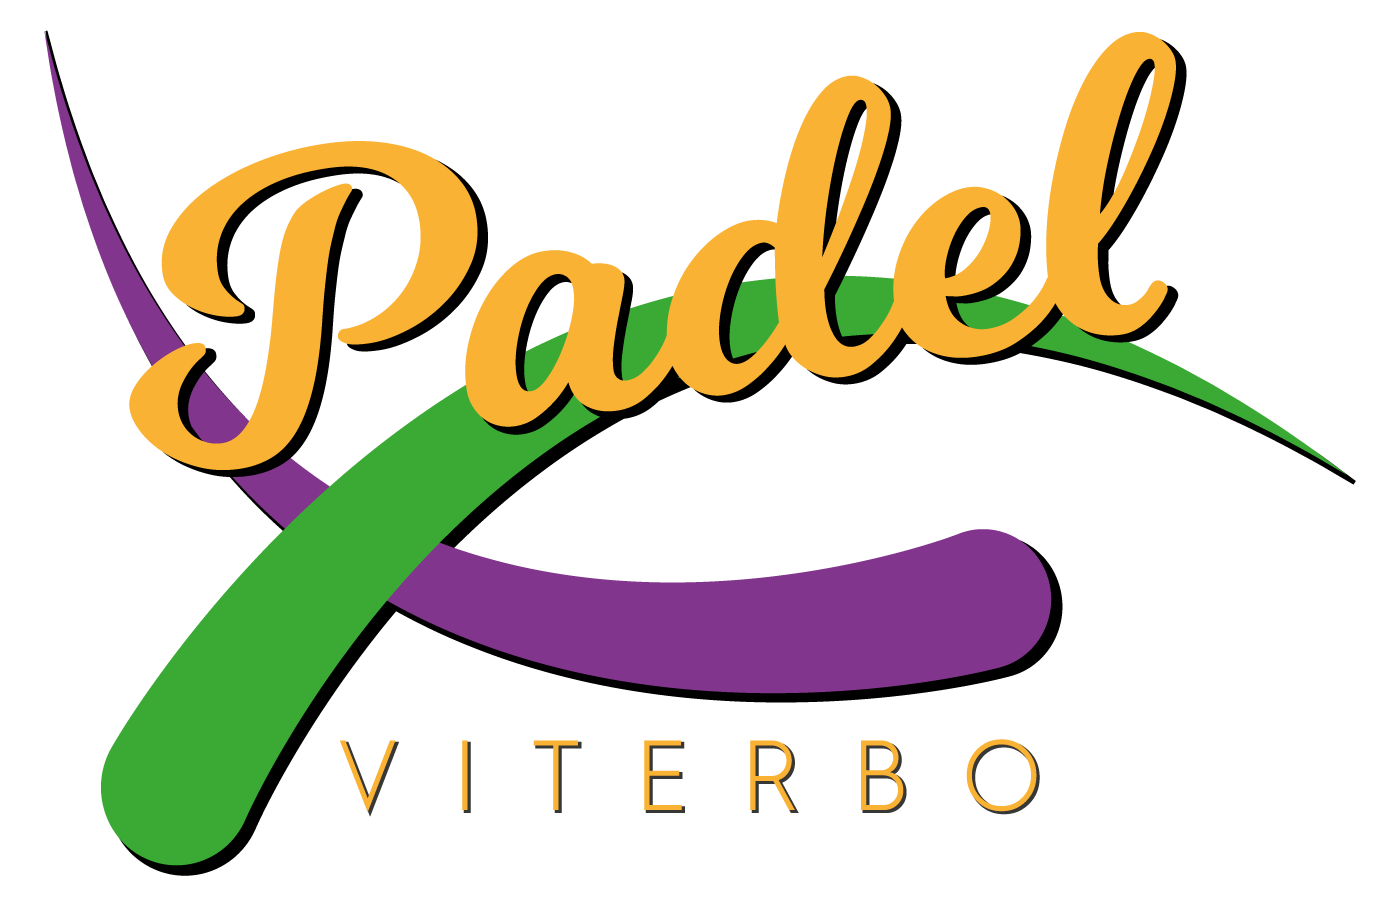 Tennis Padel Viterbo - Tennis Paddle Viterbo